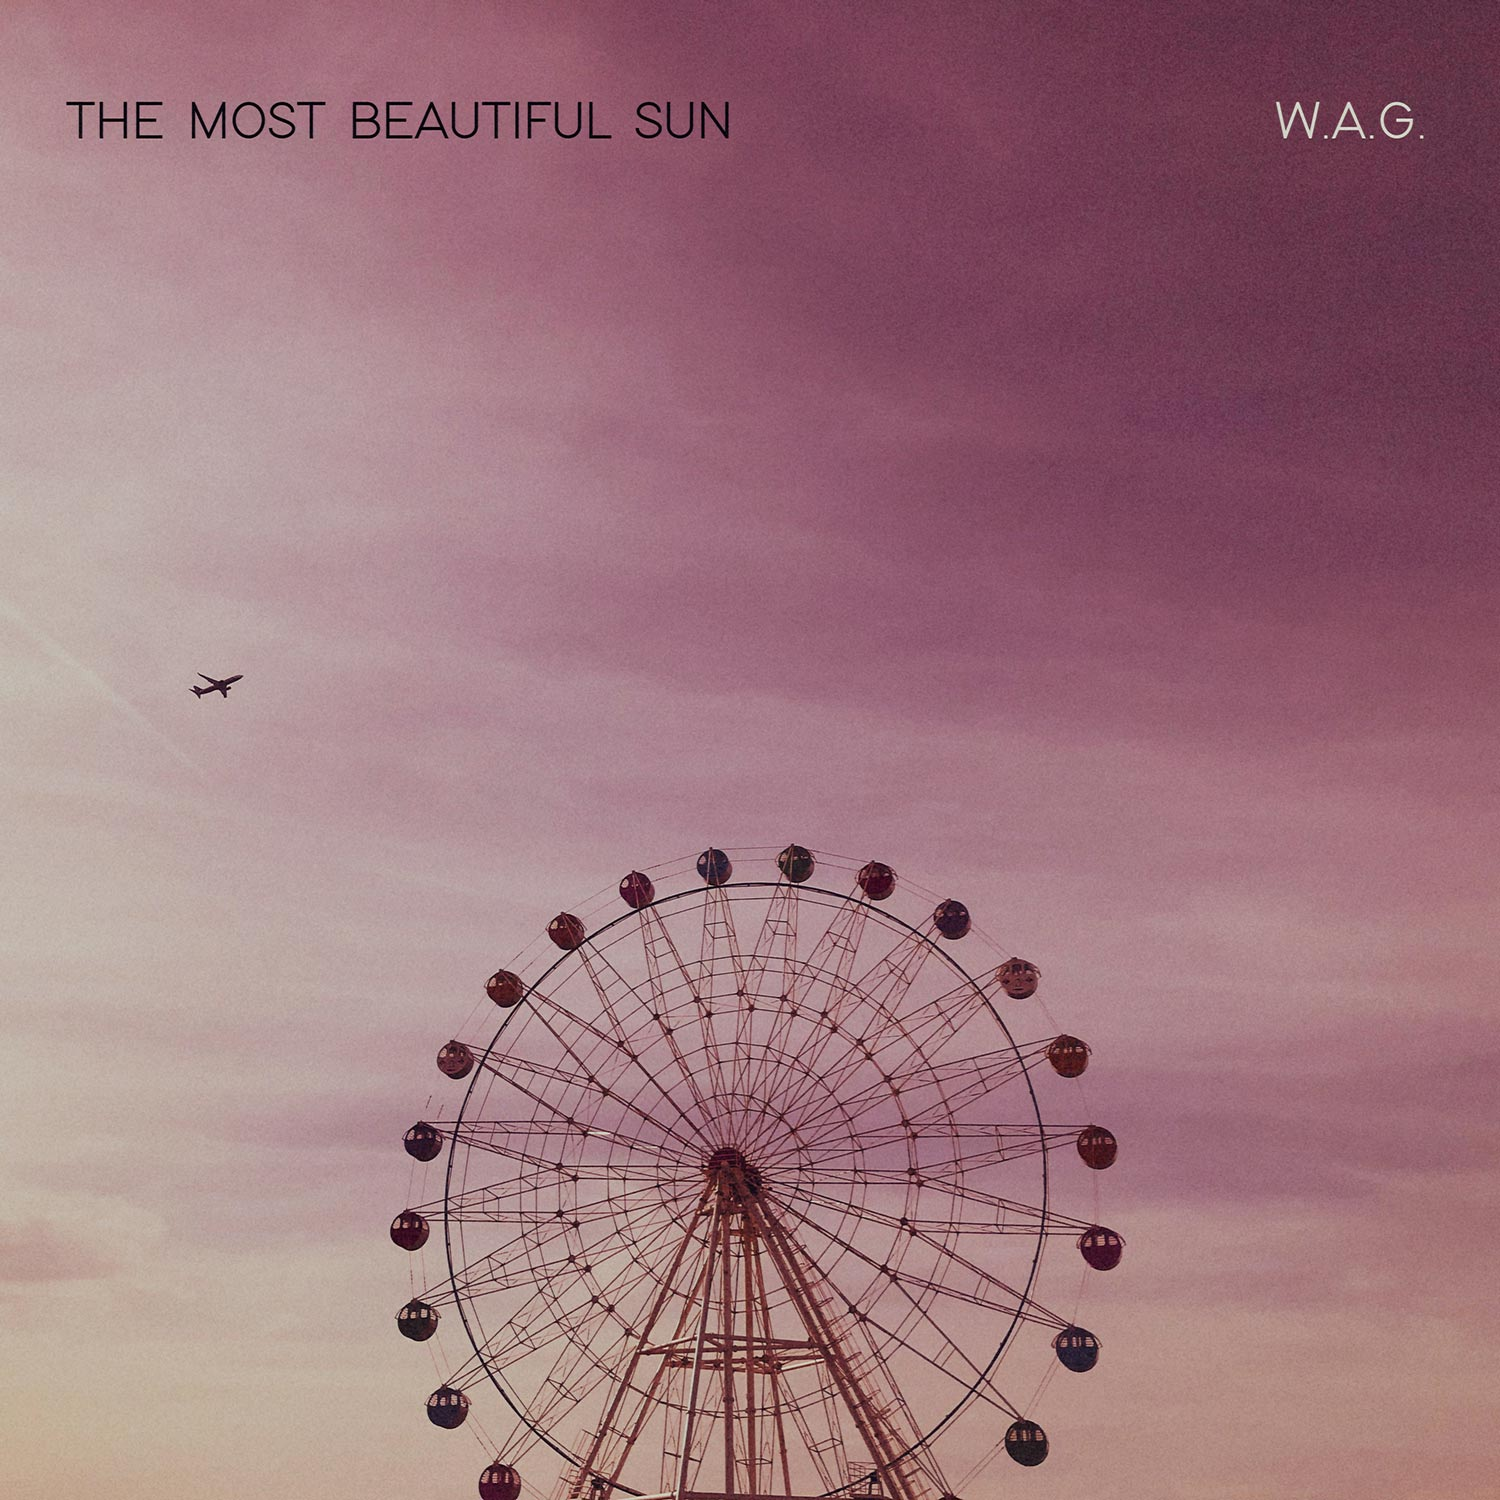 The Most Beautiful Sun - W.A.G.